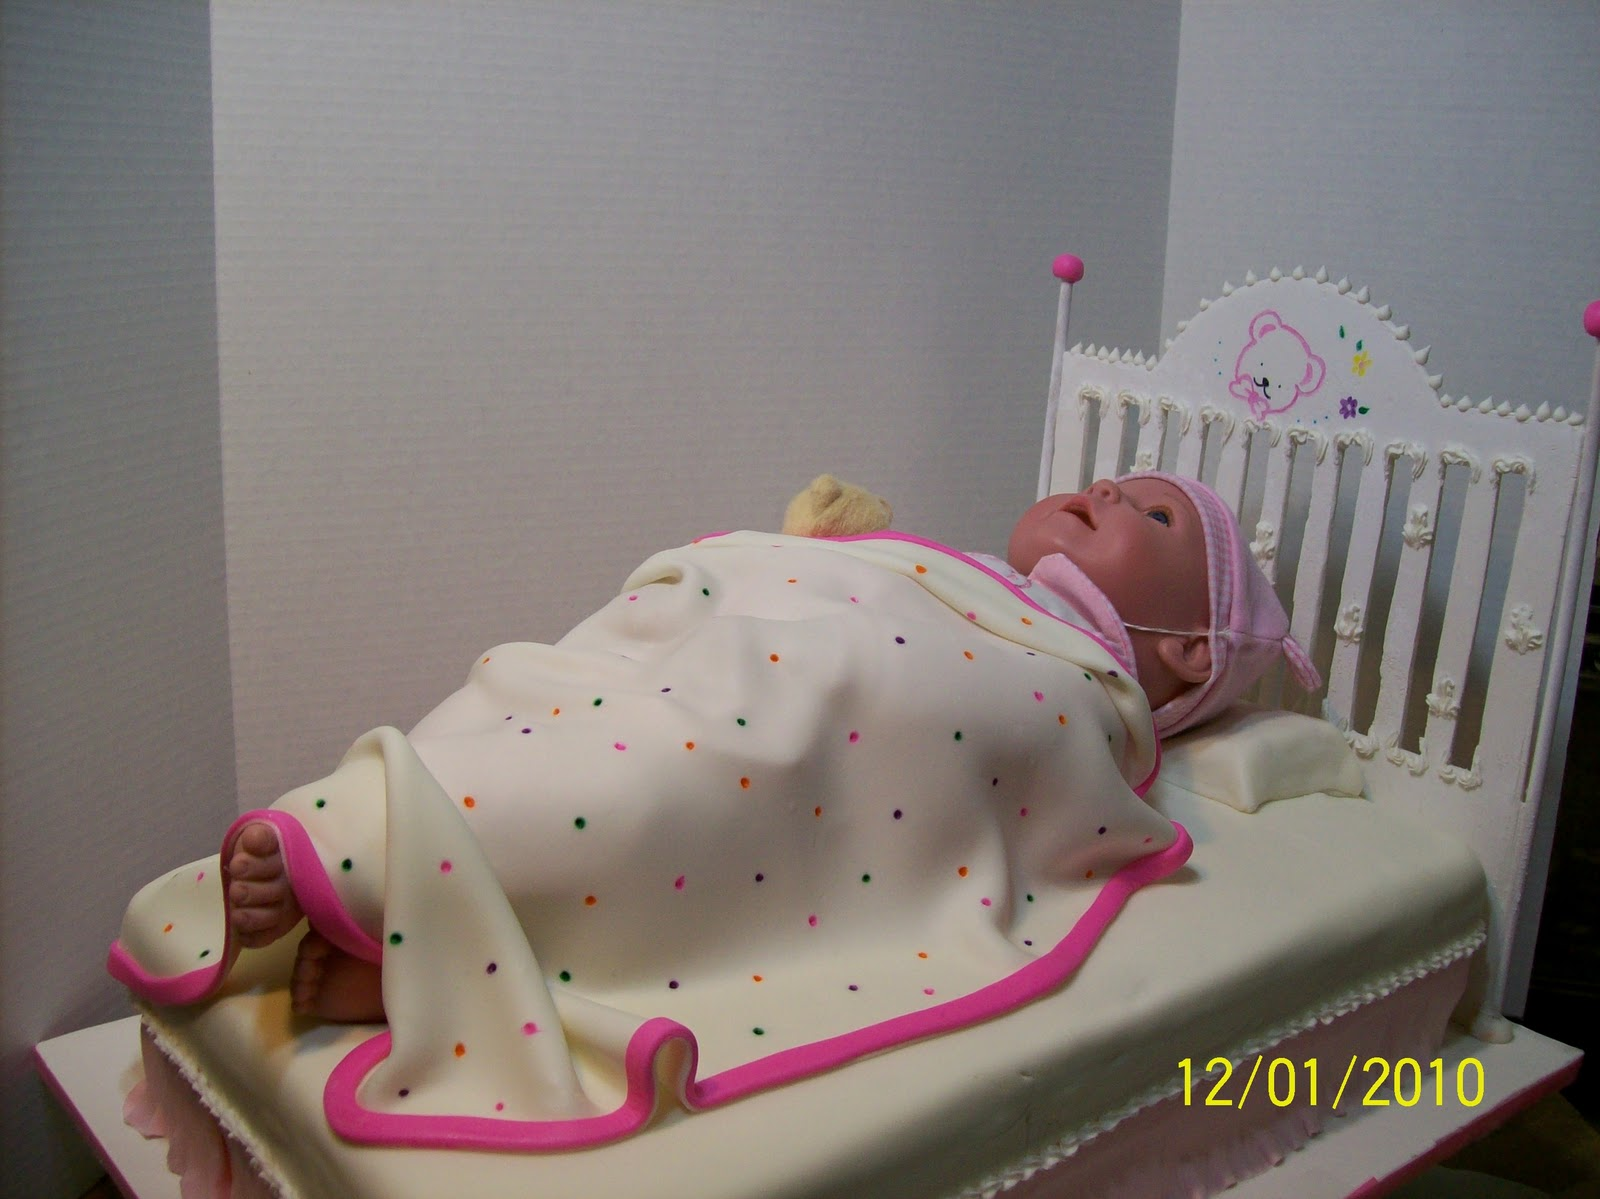 Baby Doll Cake Images : Cakes By Chris: Baby Doll Cake